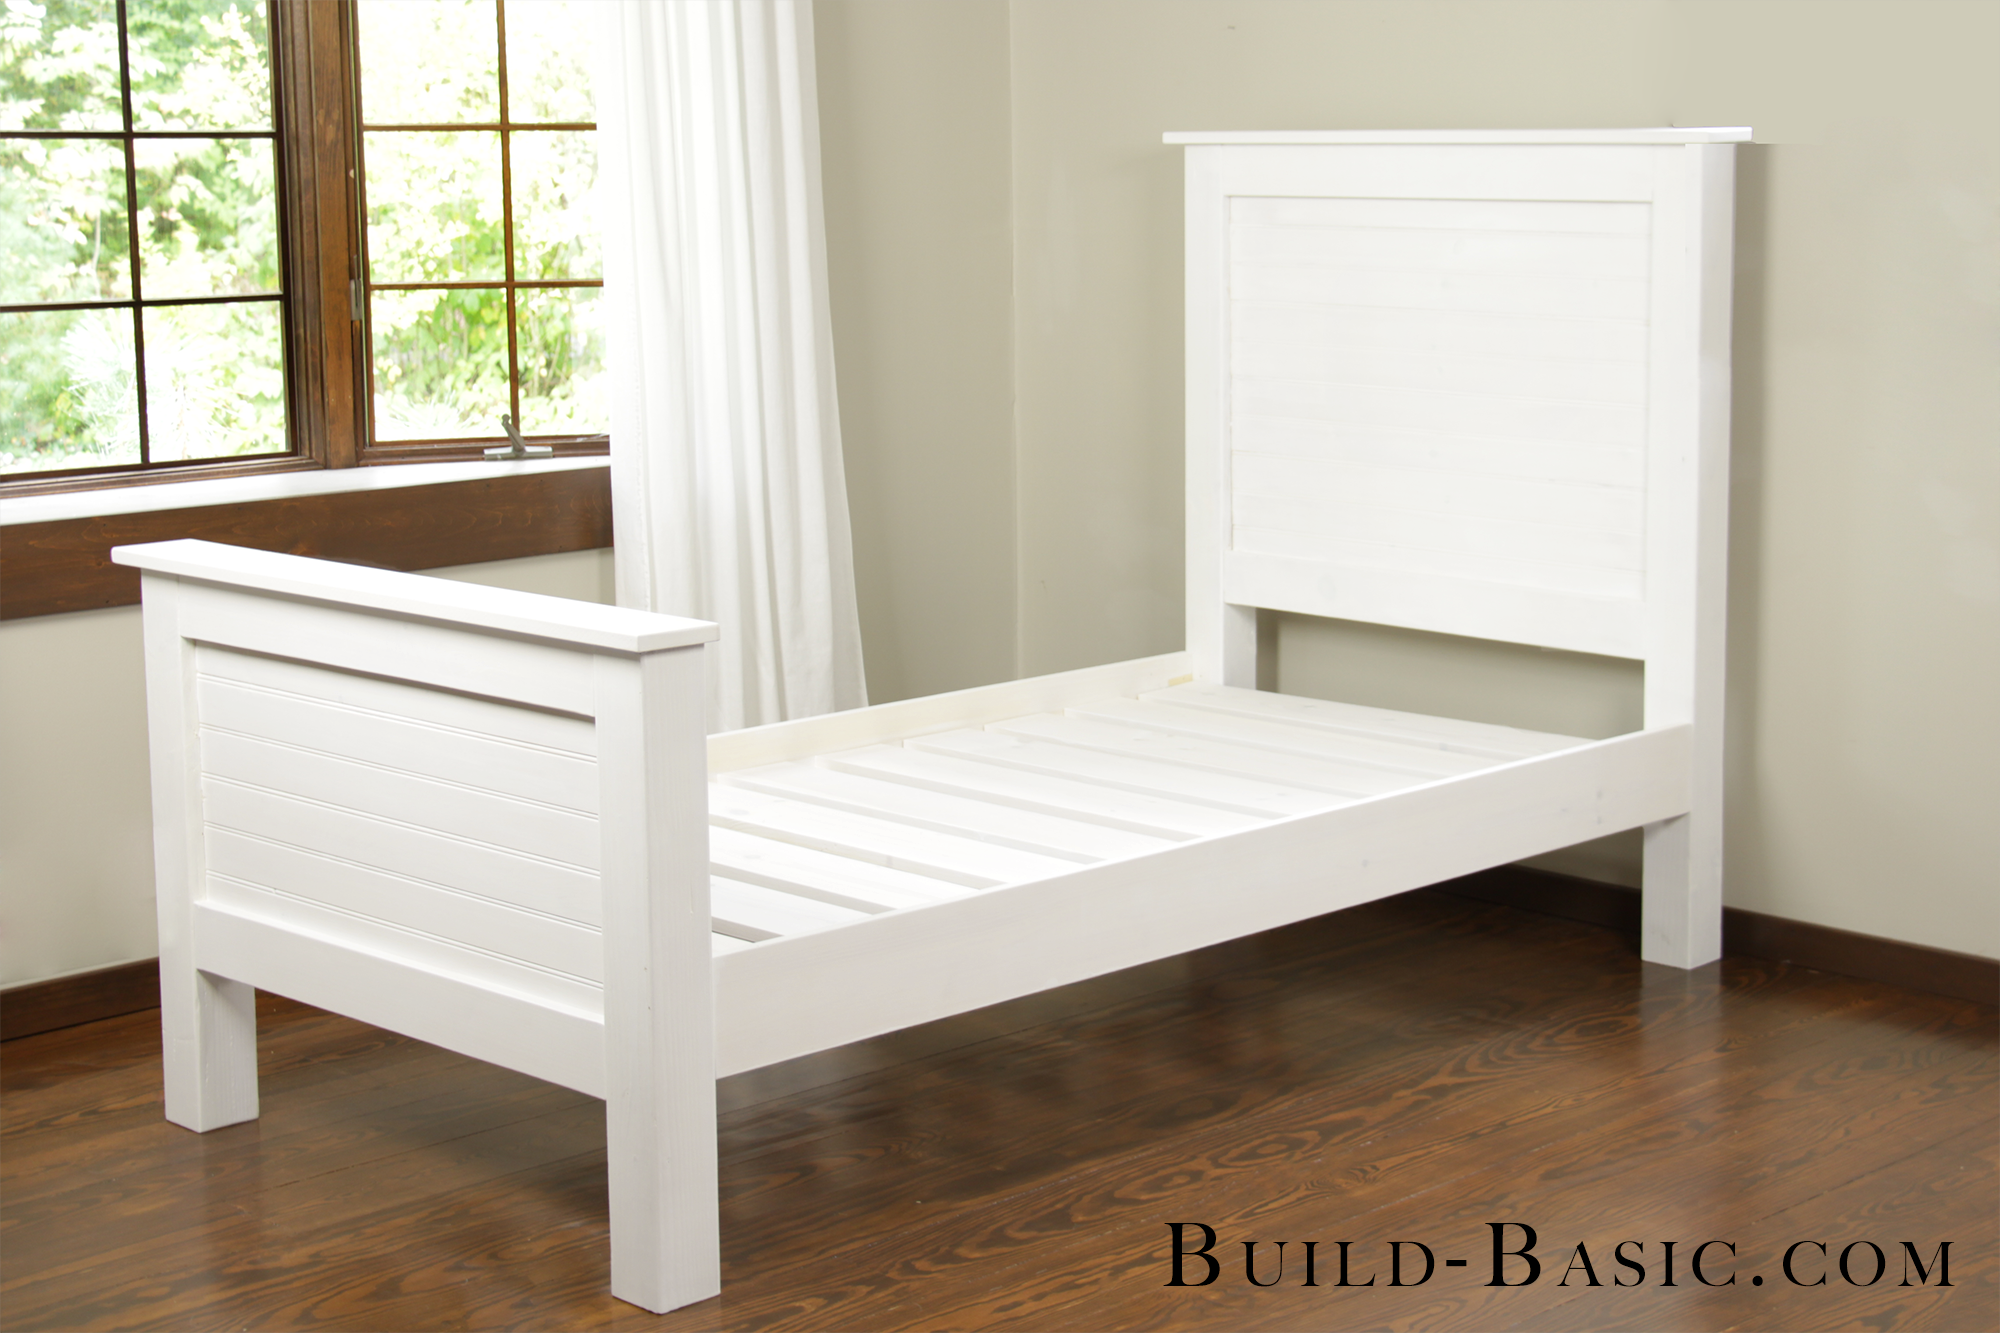 Build a diy twin bed build basic for Twin mattress and frame